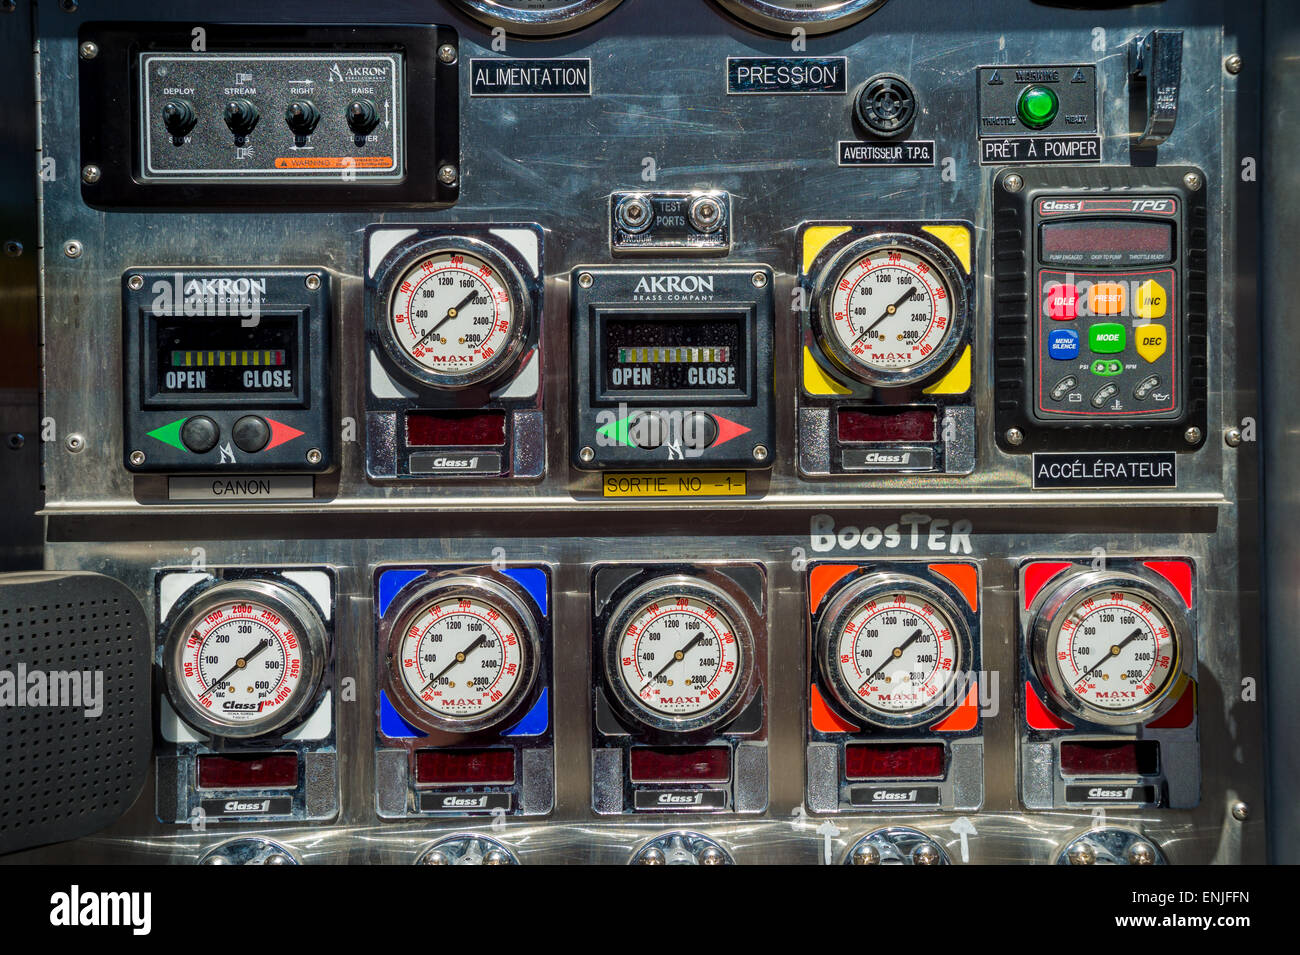 Fire truck control panel and valves - Stock Image